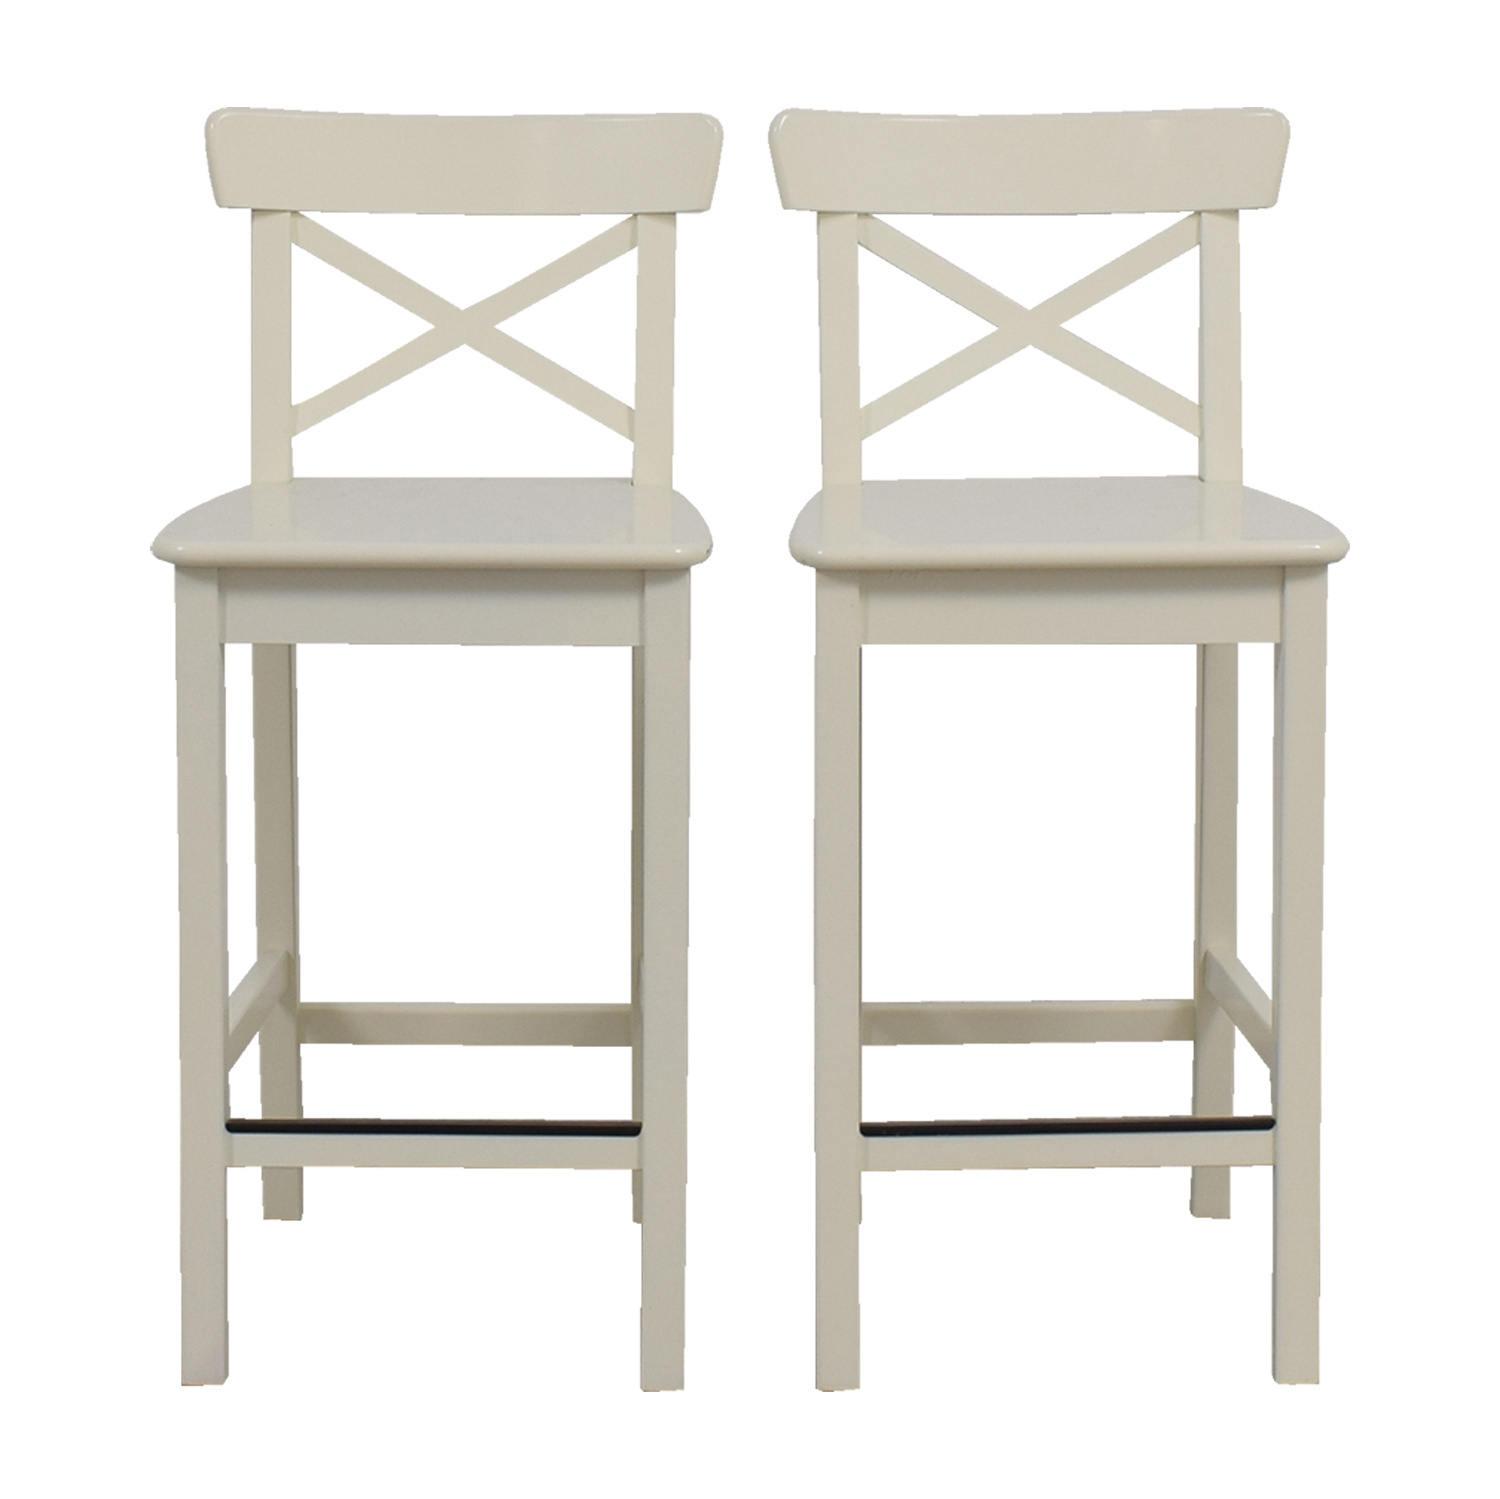 white bar stools ikea 63% OFF   IKEA IKEA White Bar Stools / Chairs white bar stools ikea